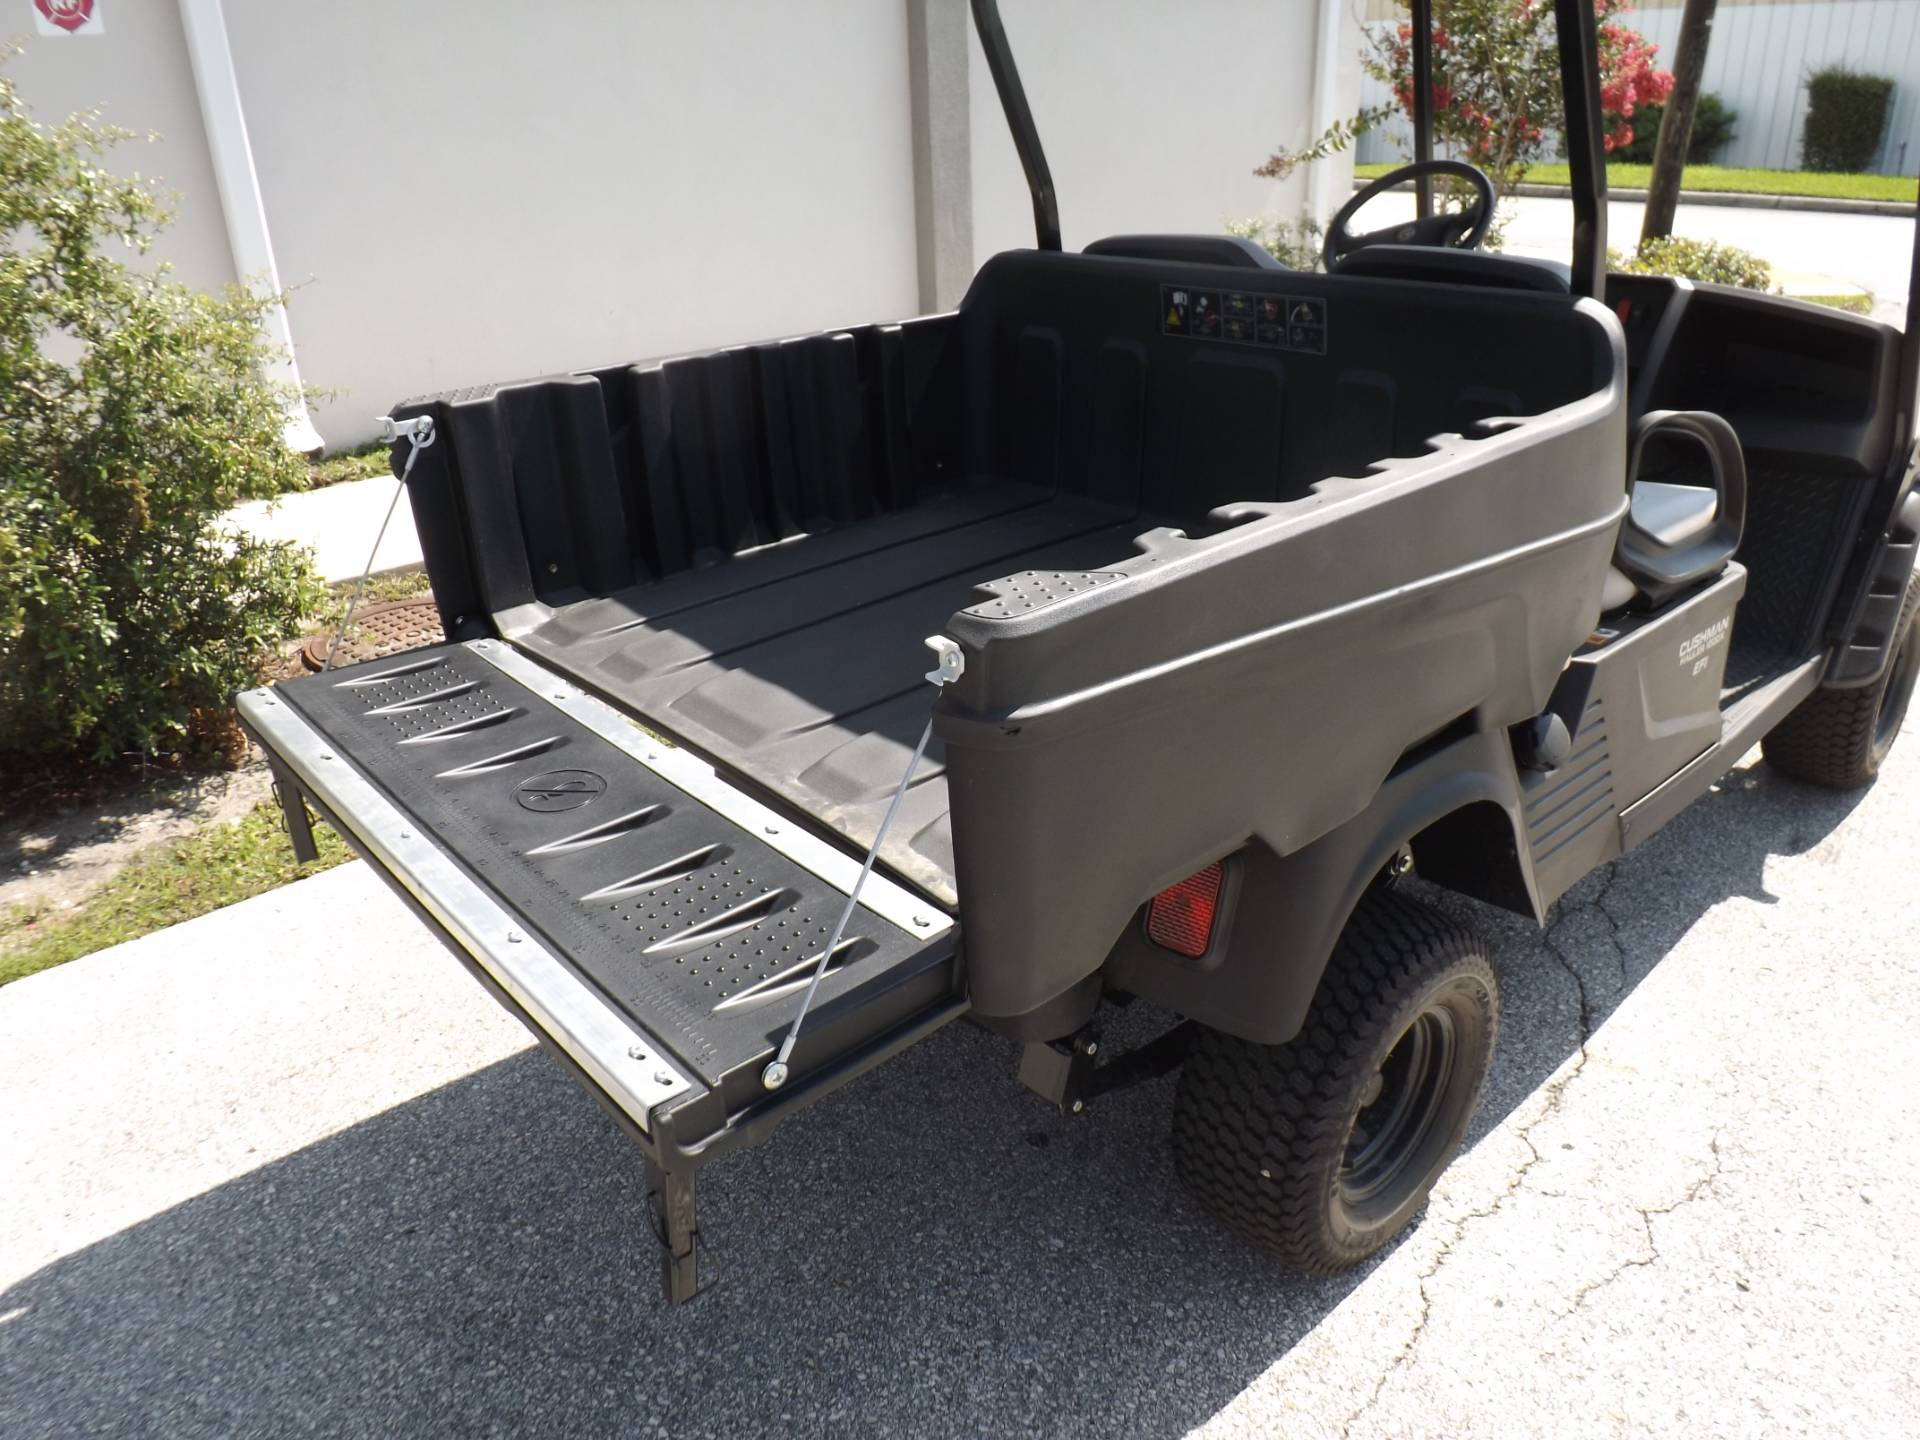 2020 Cushman Hauler 1200X Gas in Lakeland, Florida - Photo 13